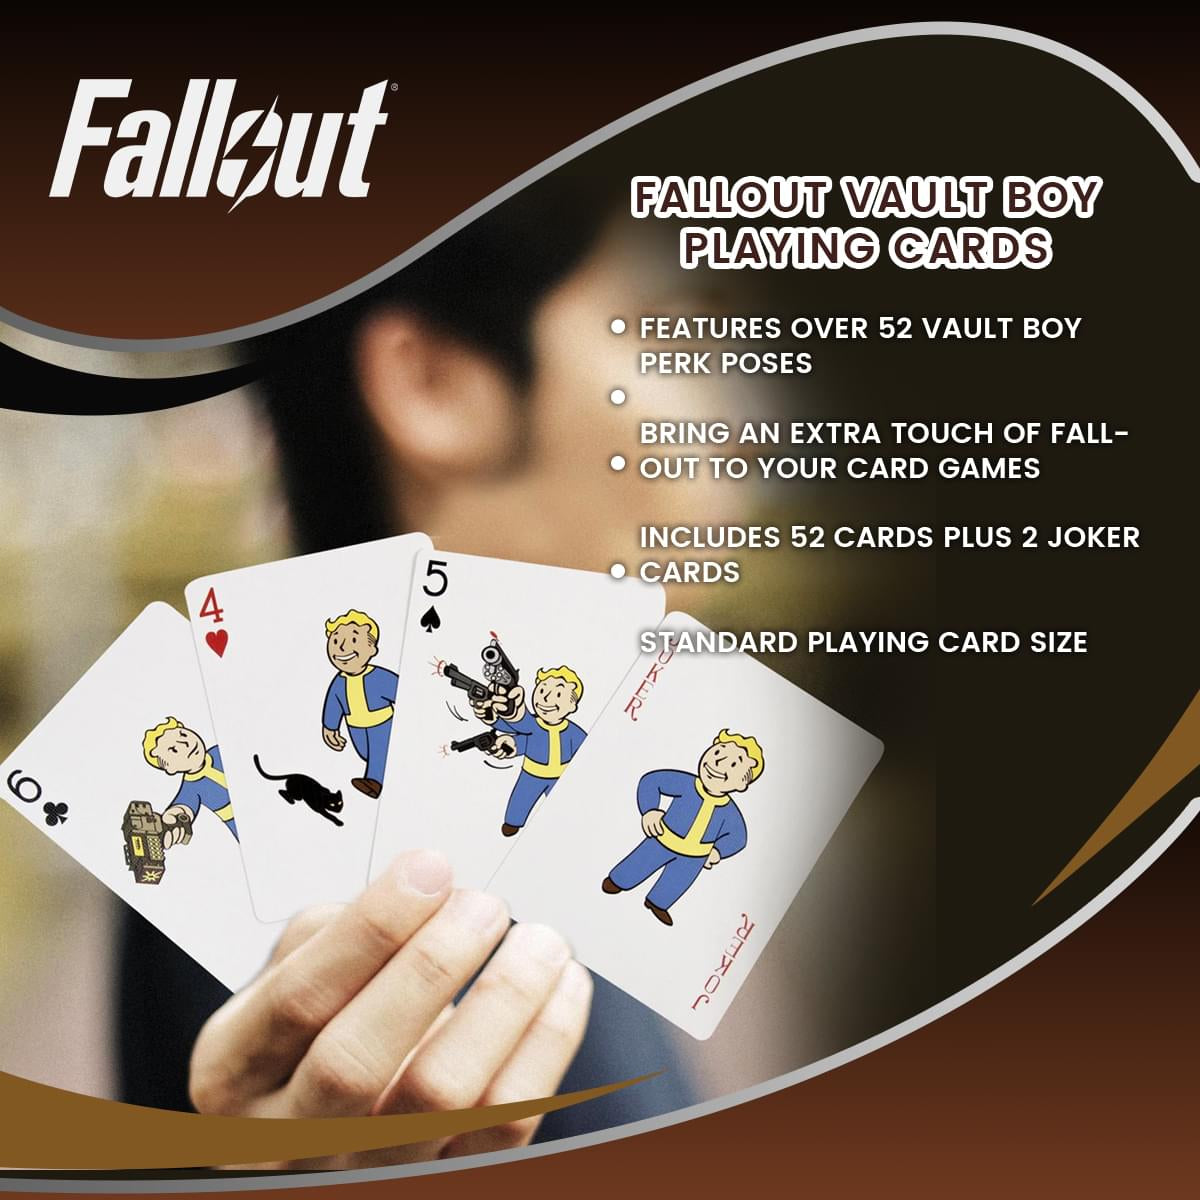 Fallout Vault Boy Playing Cards